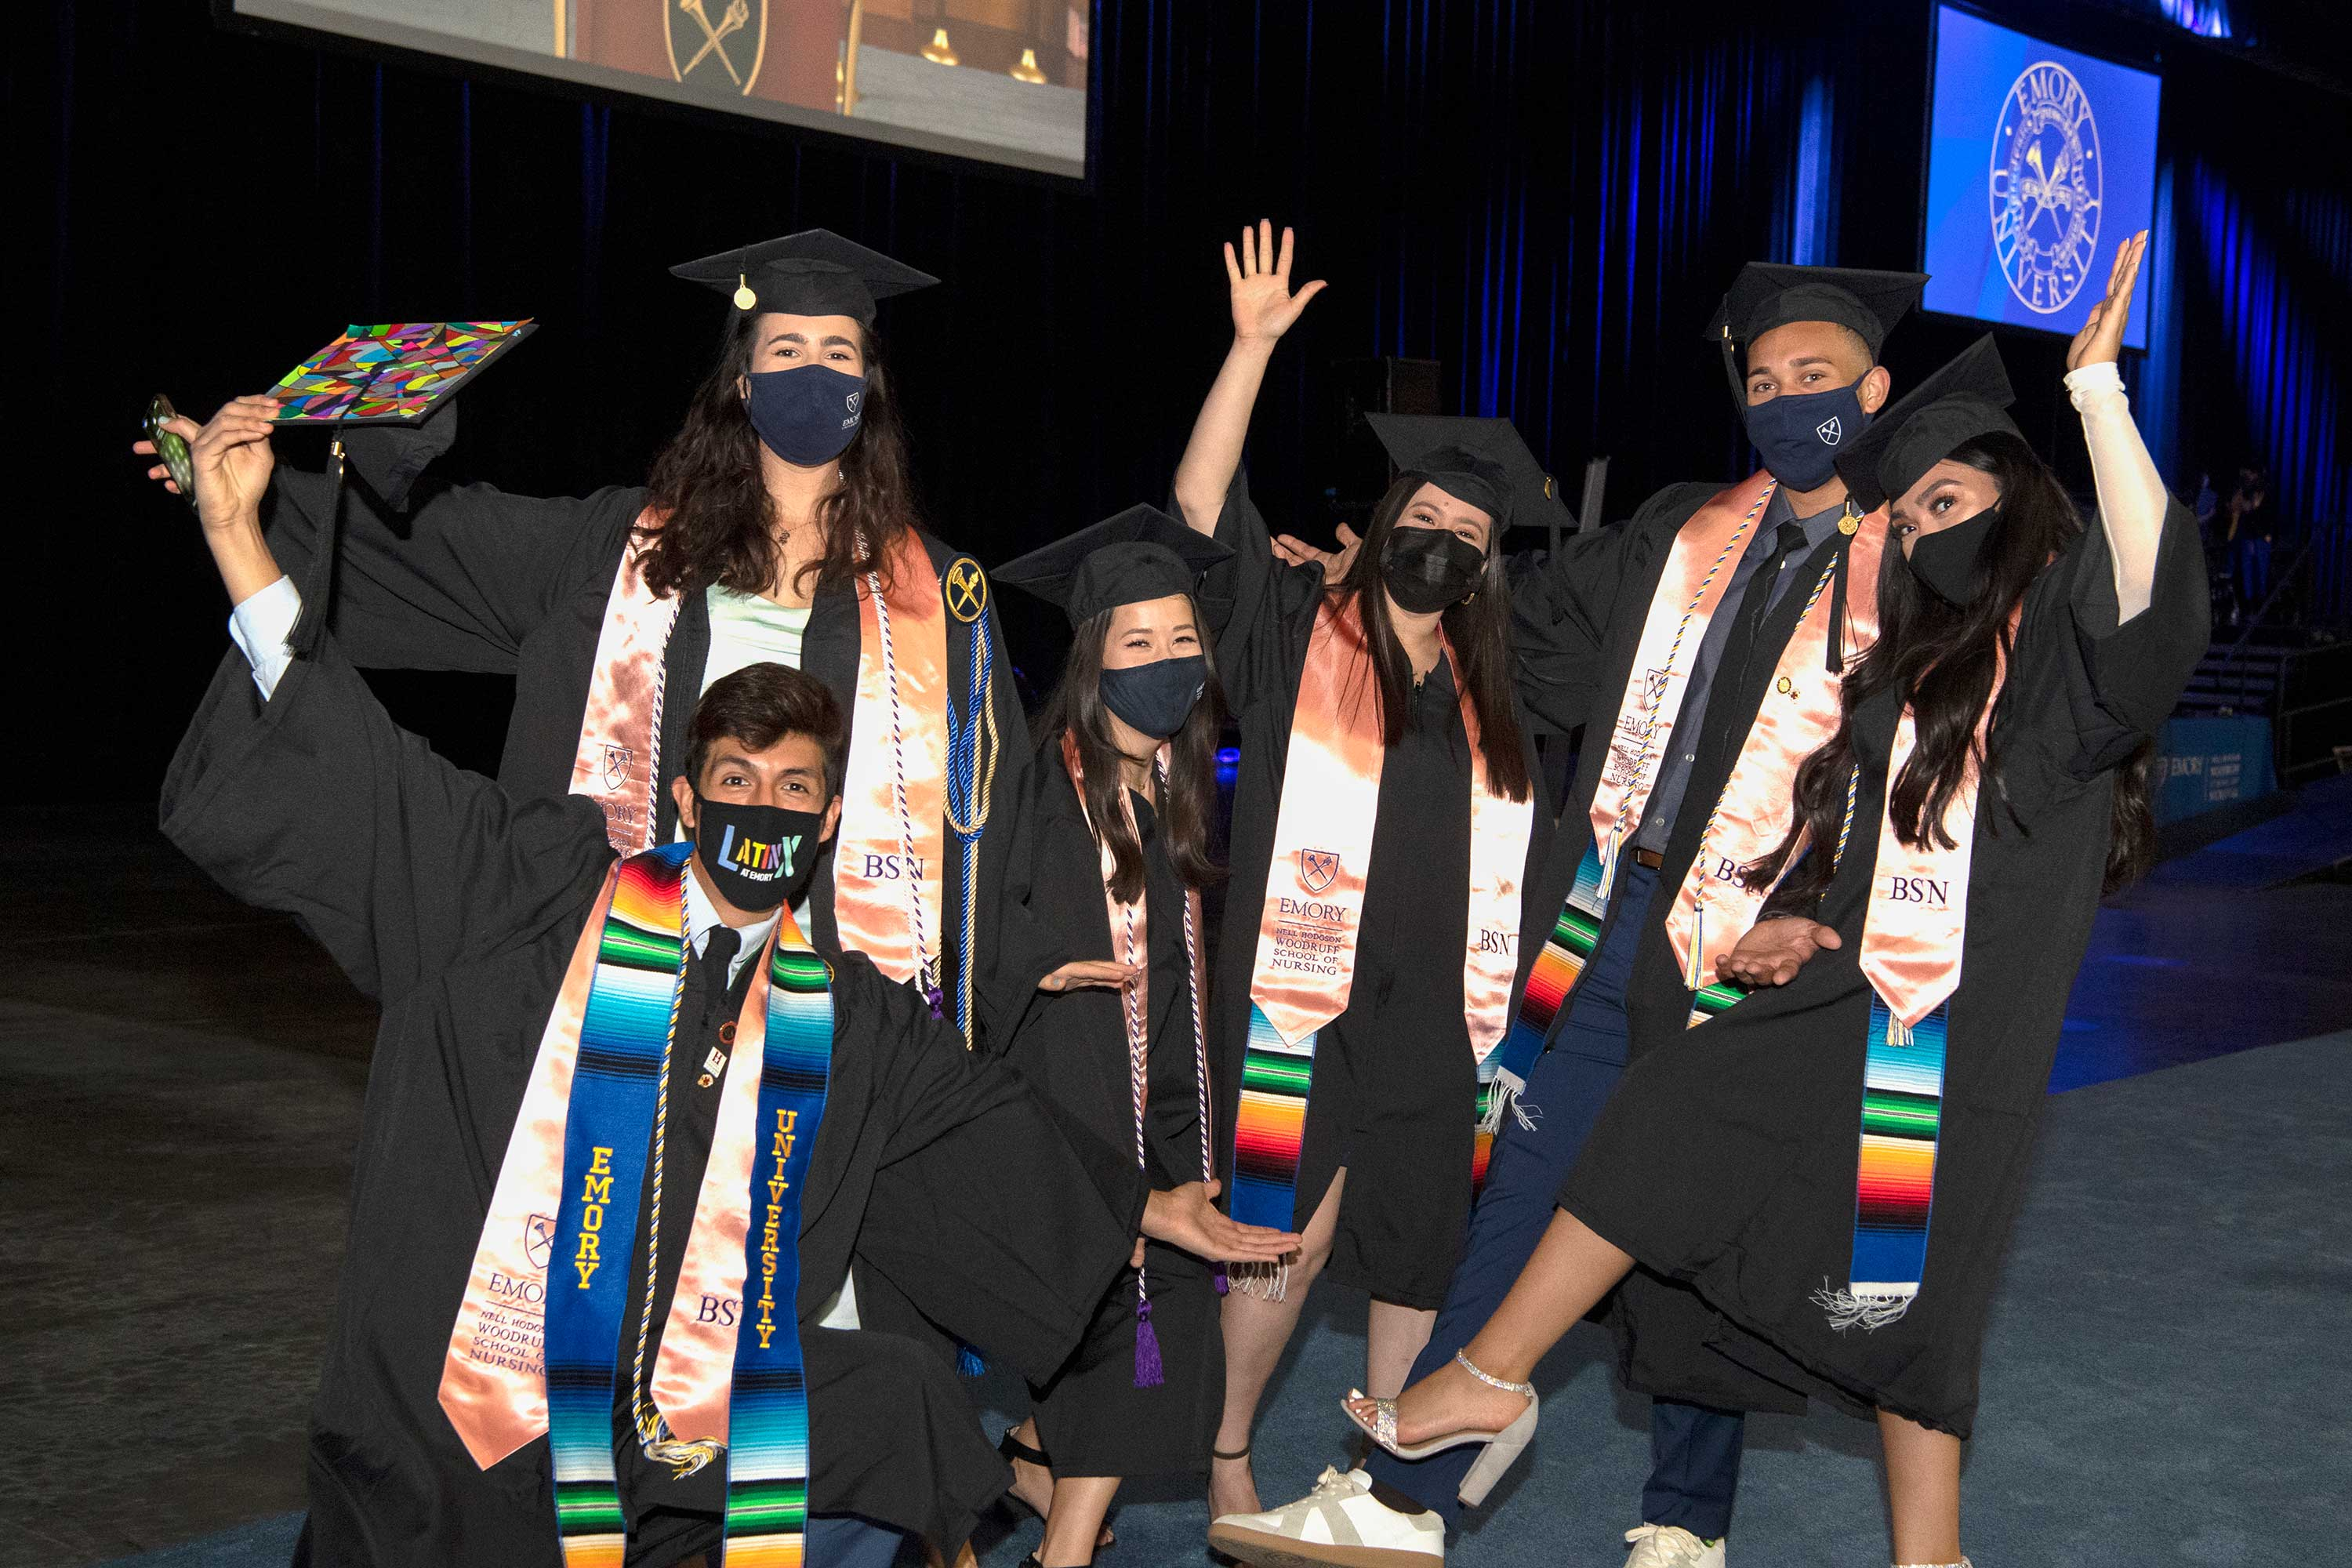 Class of 2021 graduates at commencement ceremony